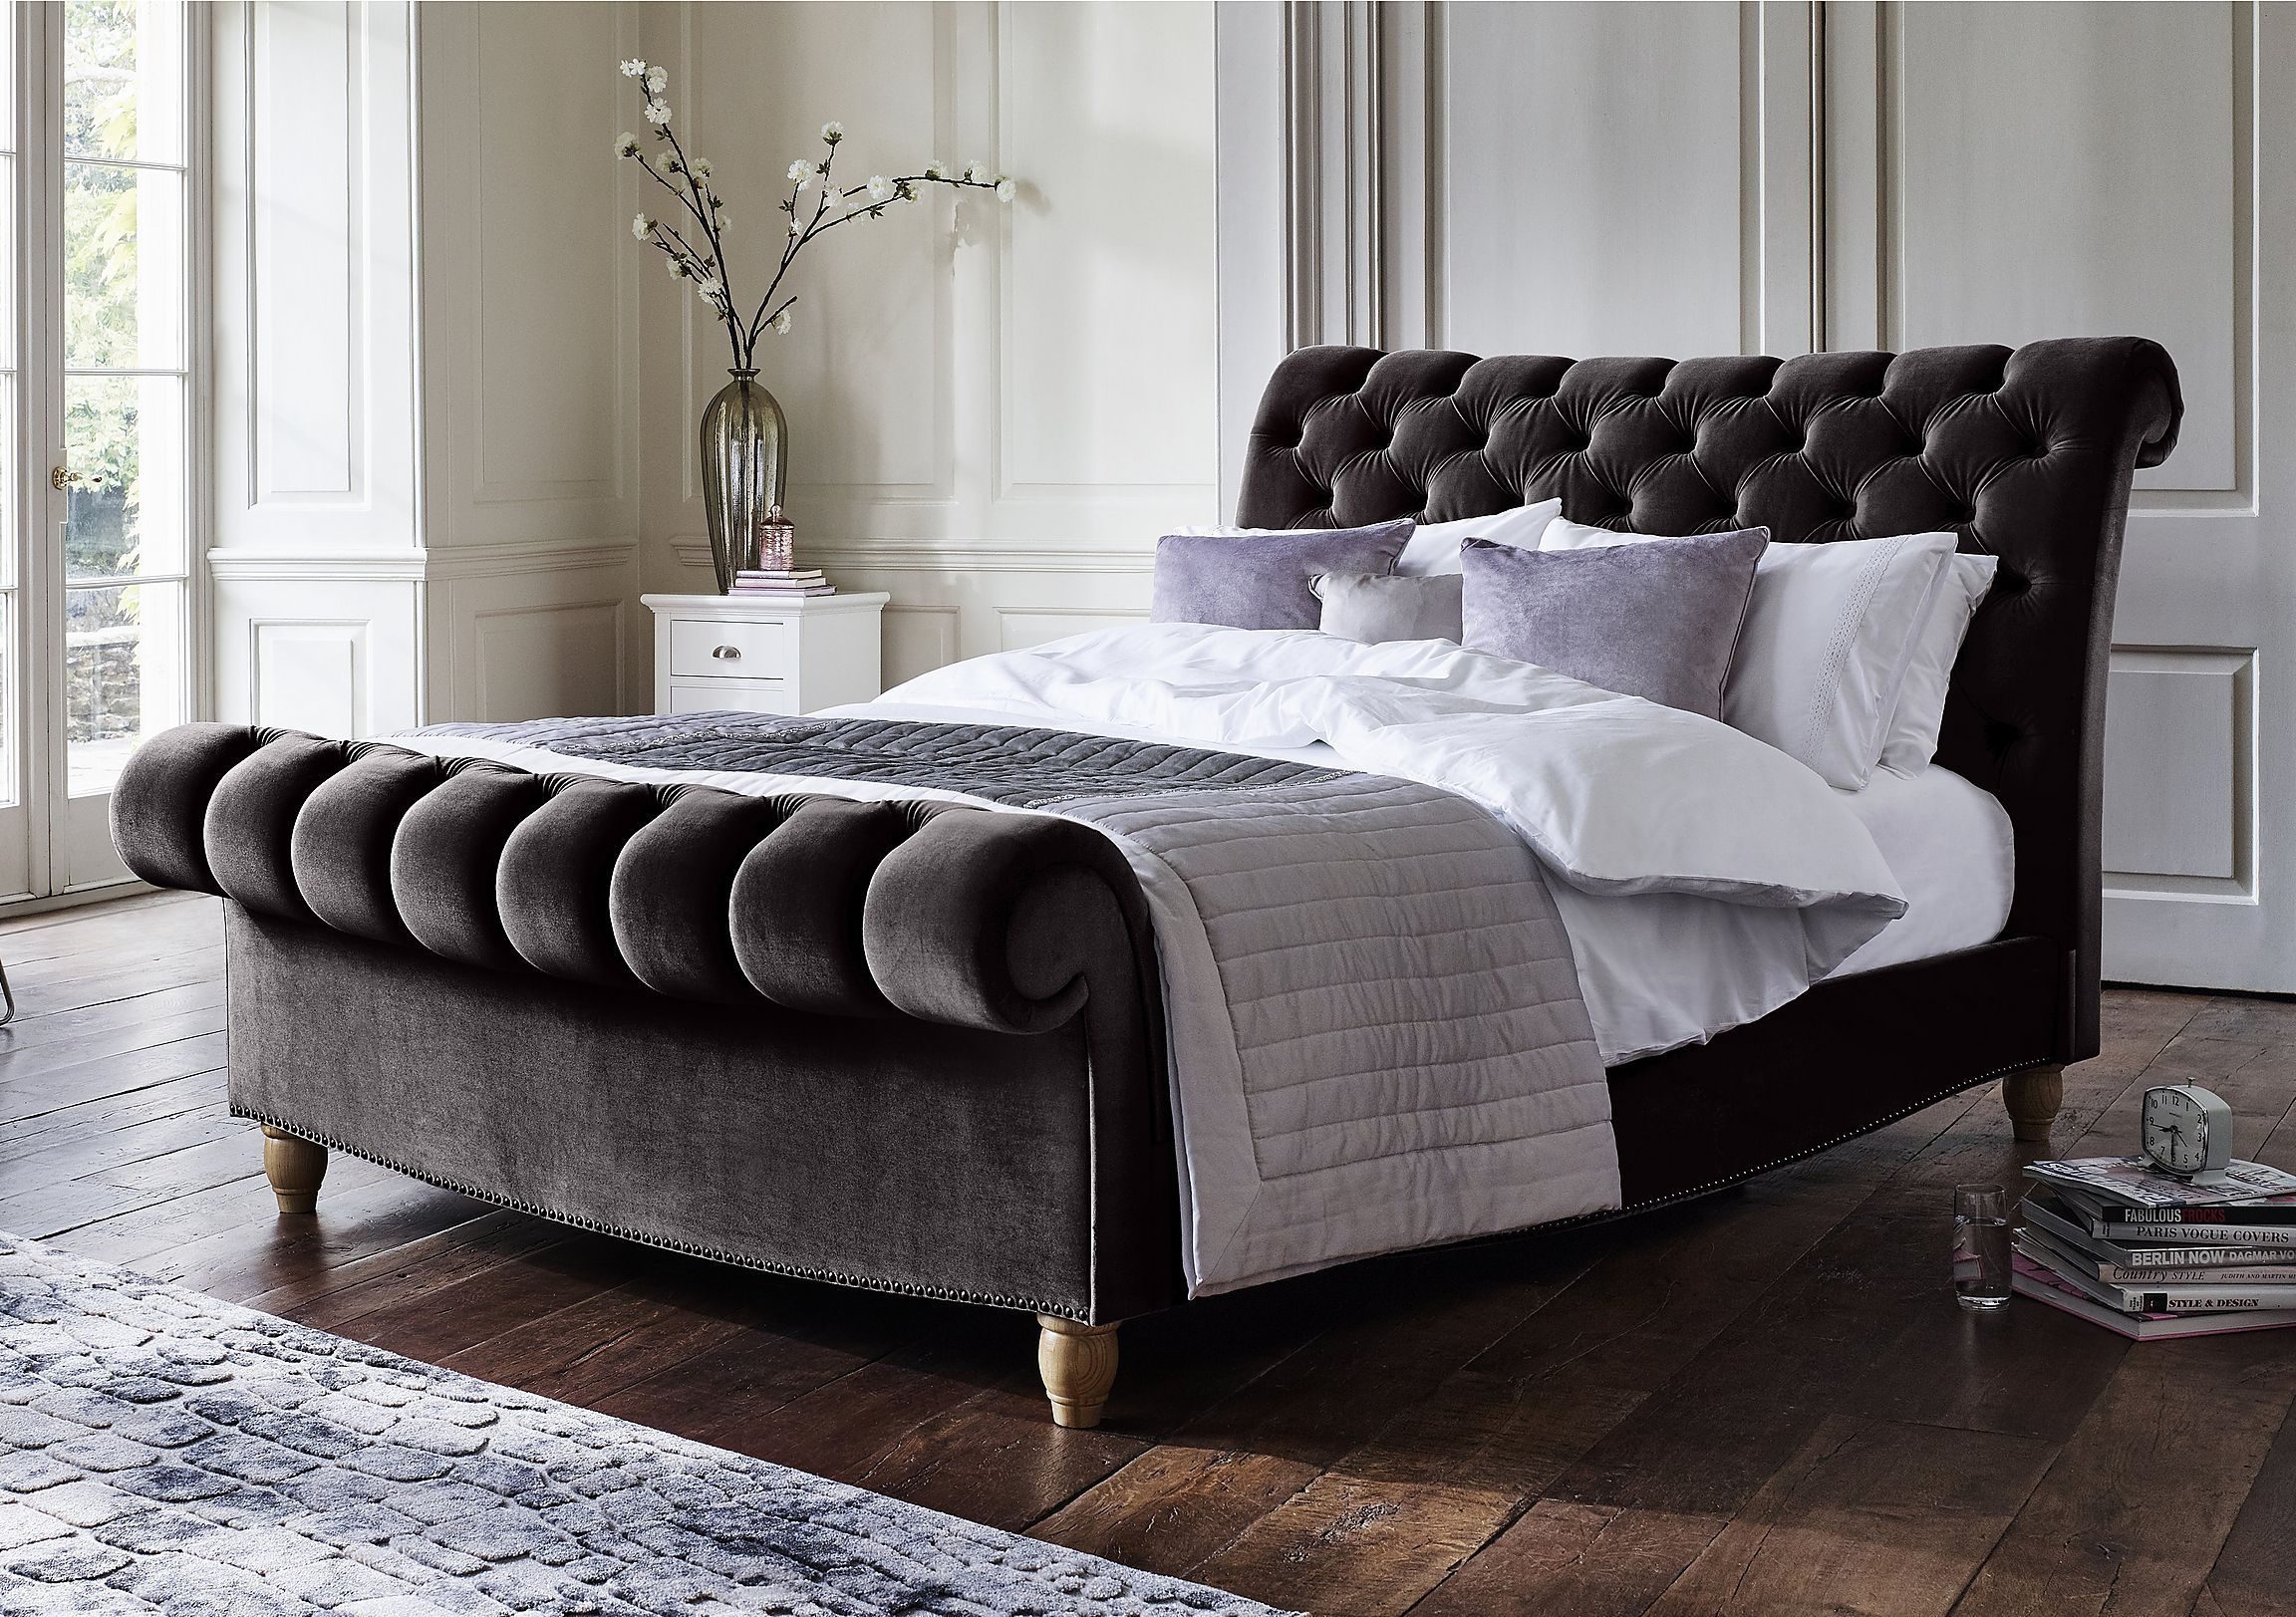 Aurora Bed Frame in 2020 Upholstered bed frame, Bed